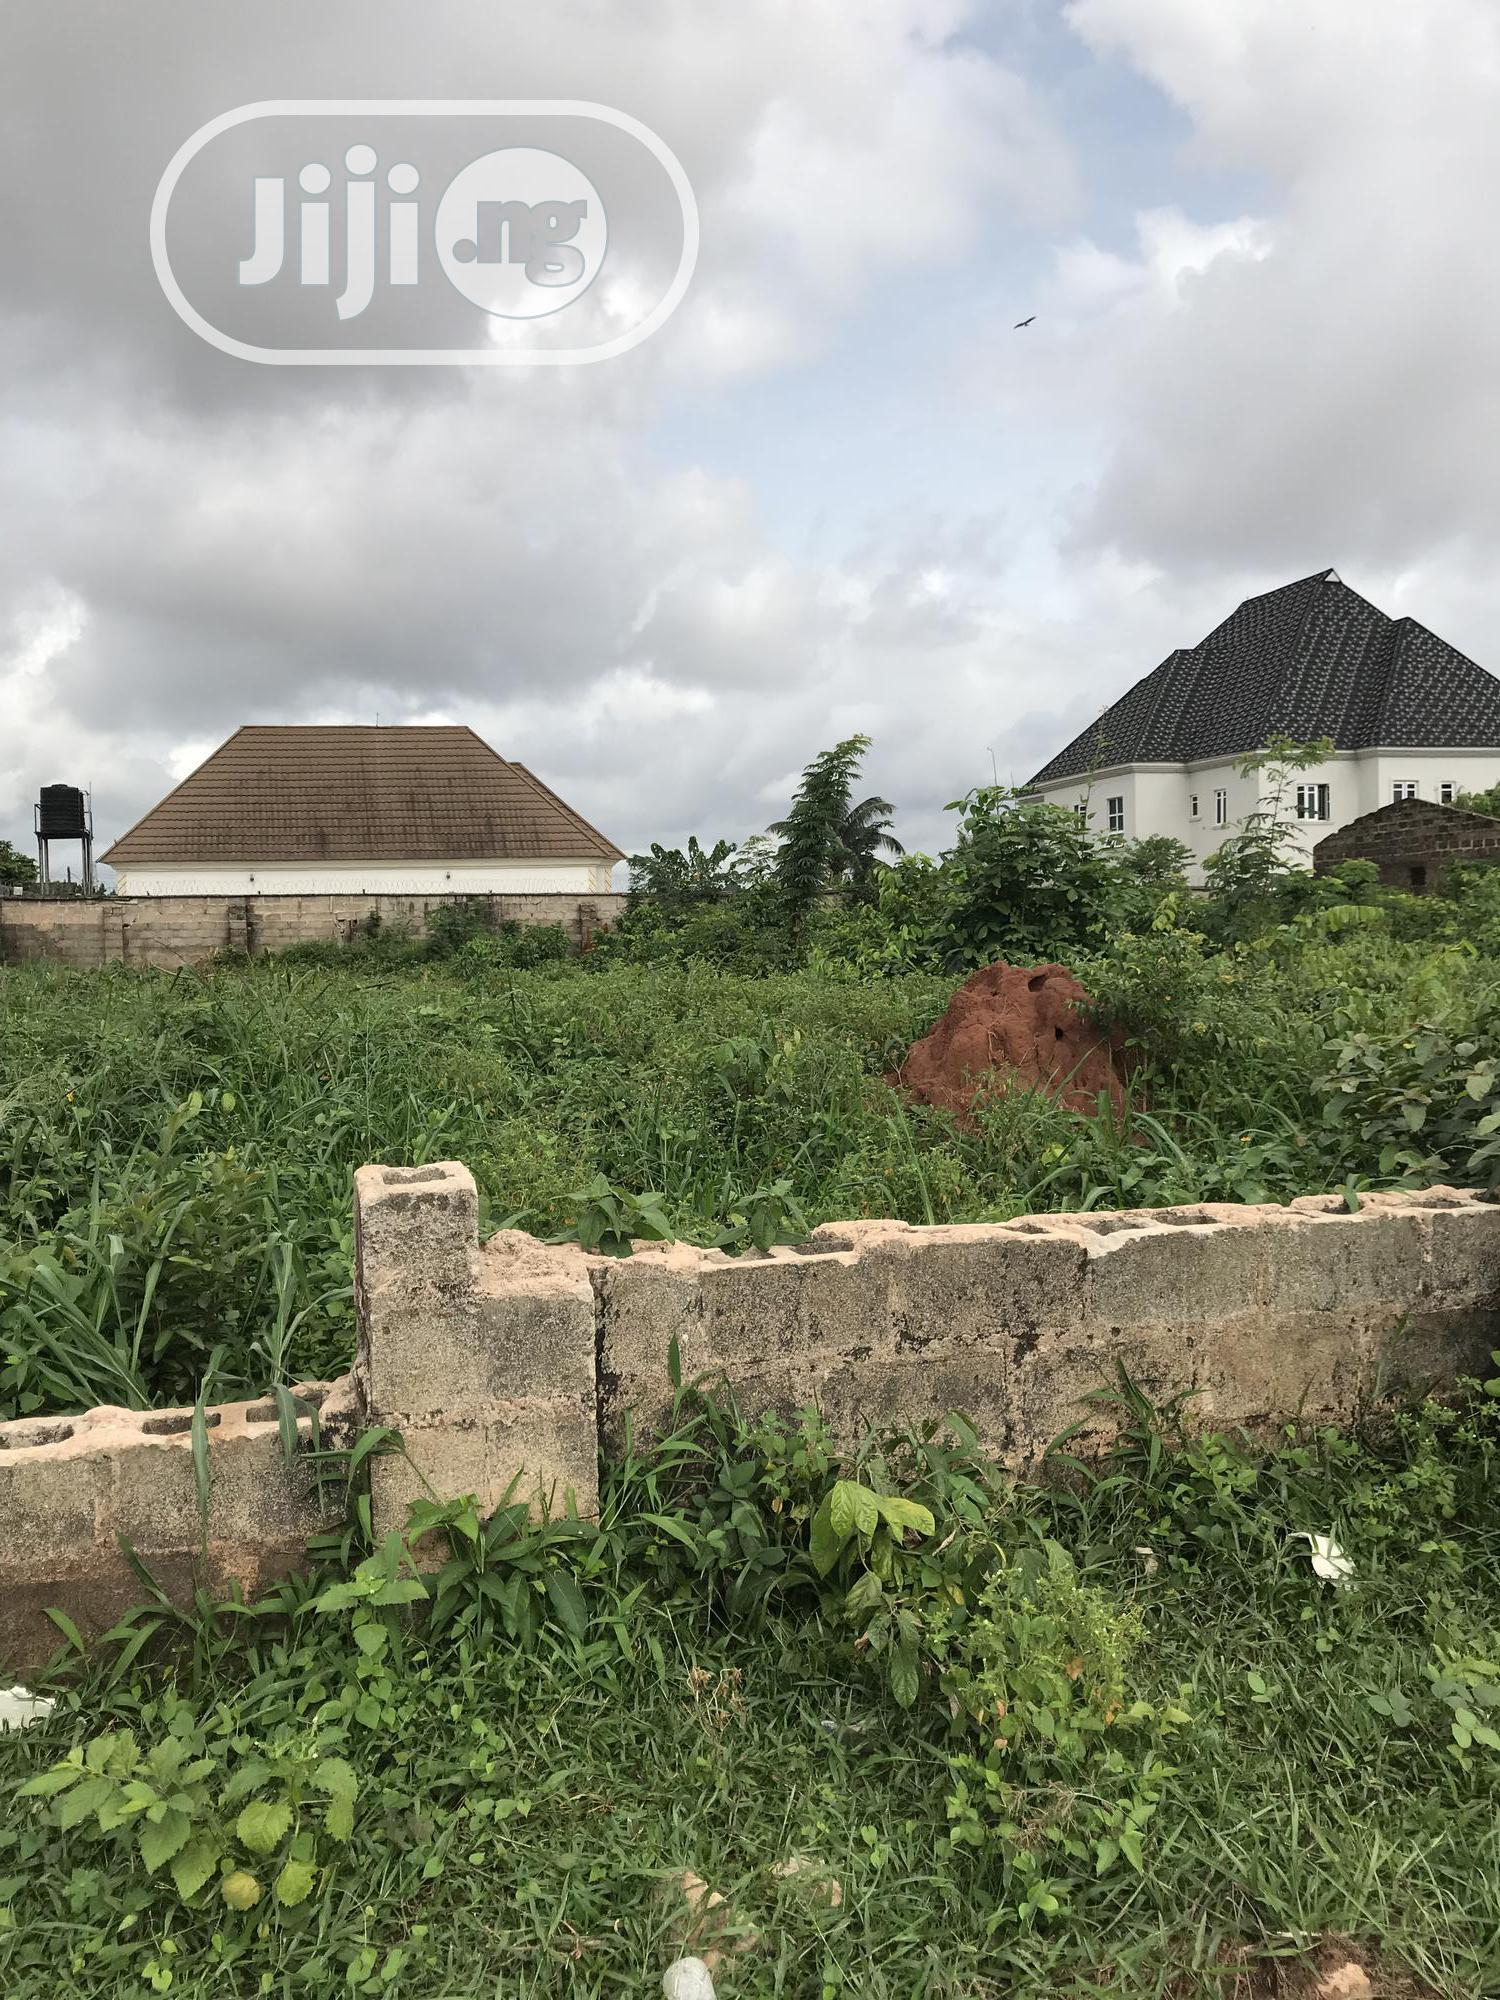 Genuine Plot Of Land Measuring 130x150ft With C Of O For Urgent Sale | Land & Plots For Sale for sale in Benin City, Edo State, Nigeria